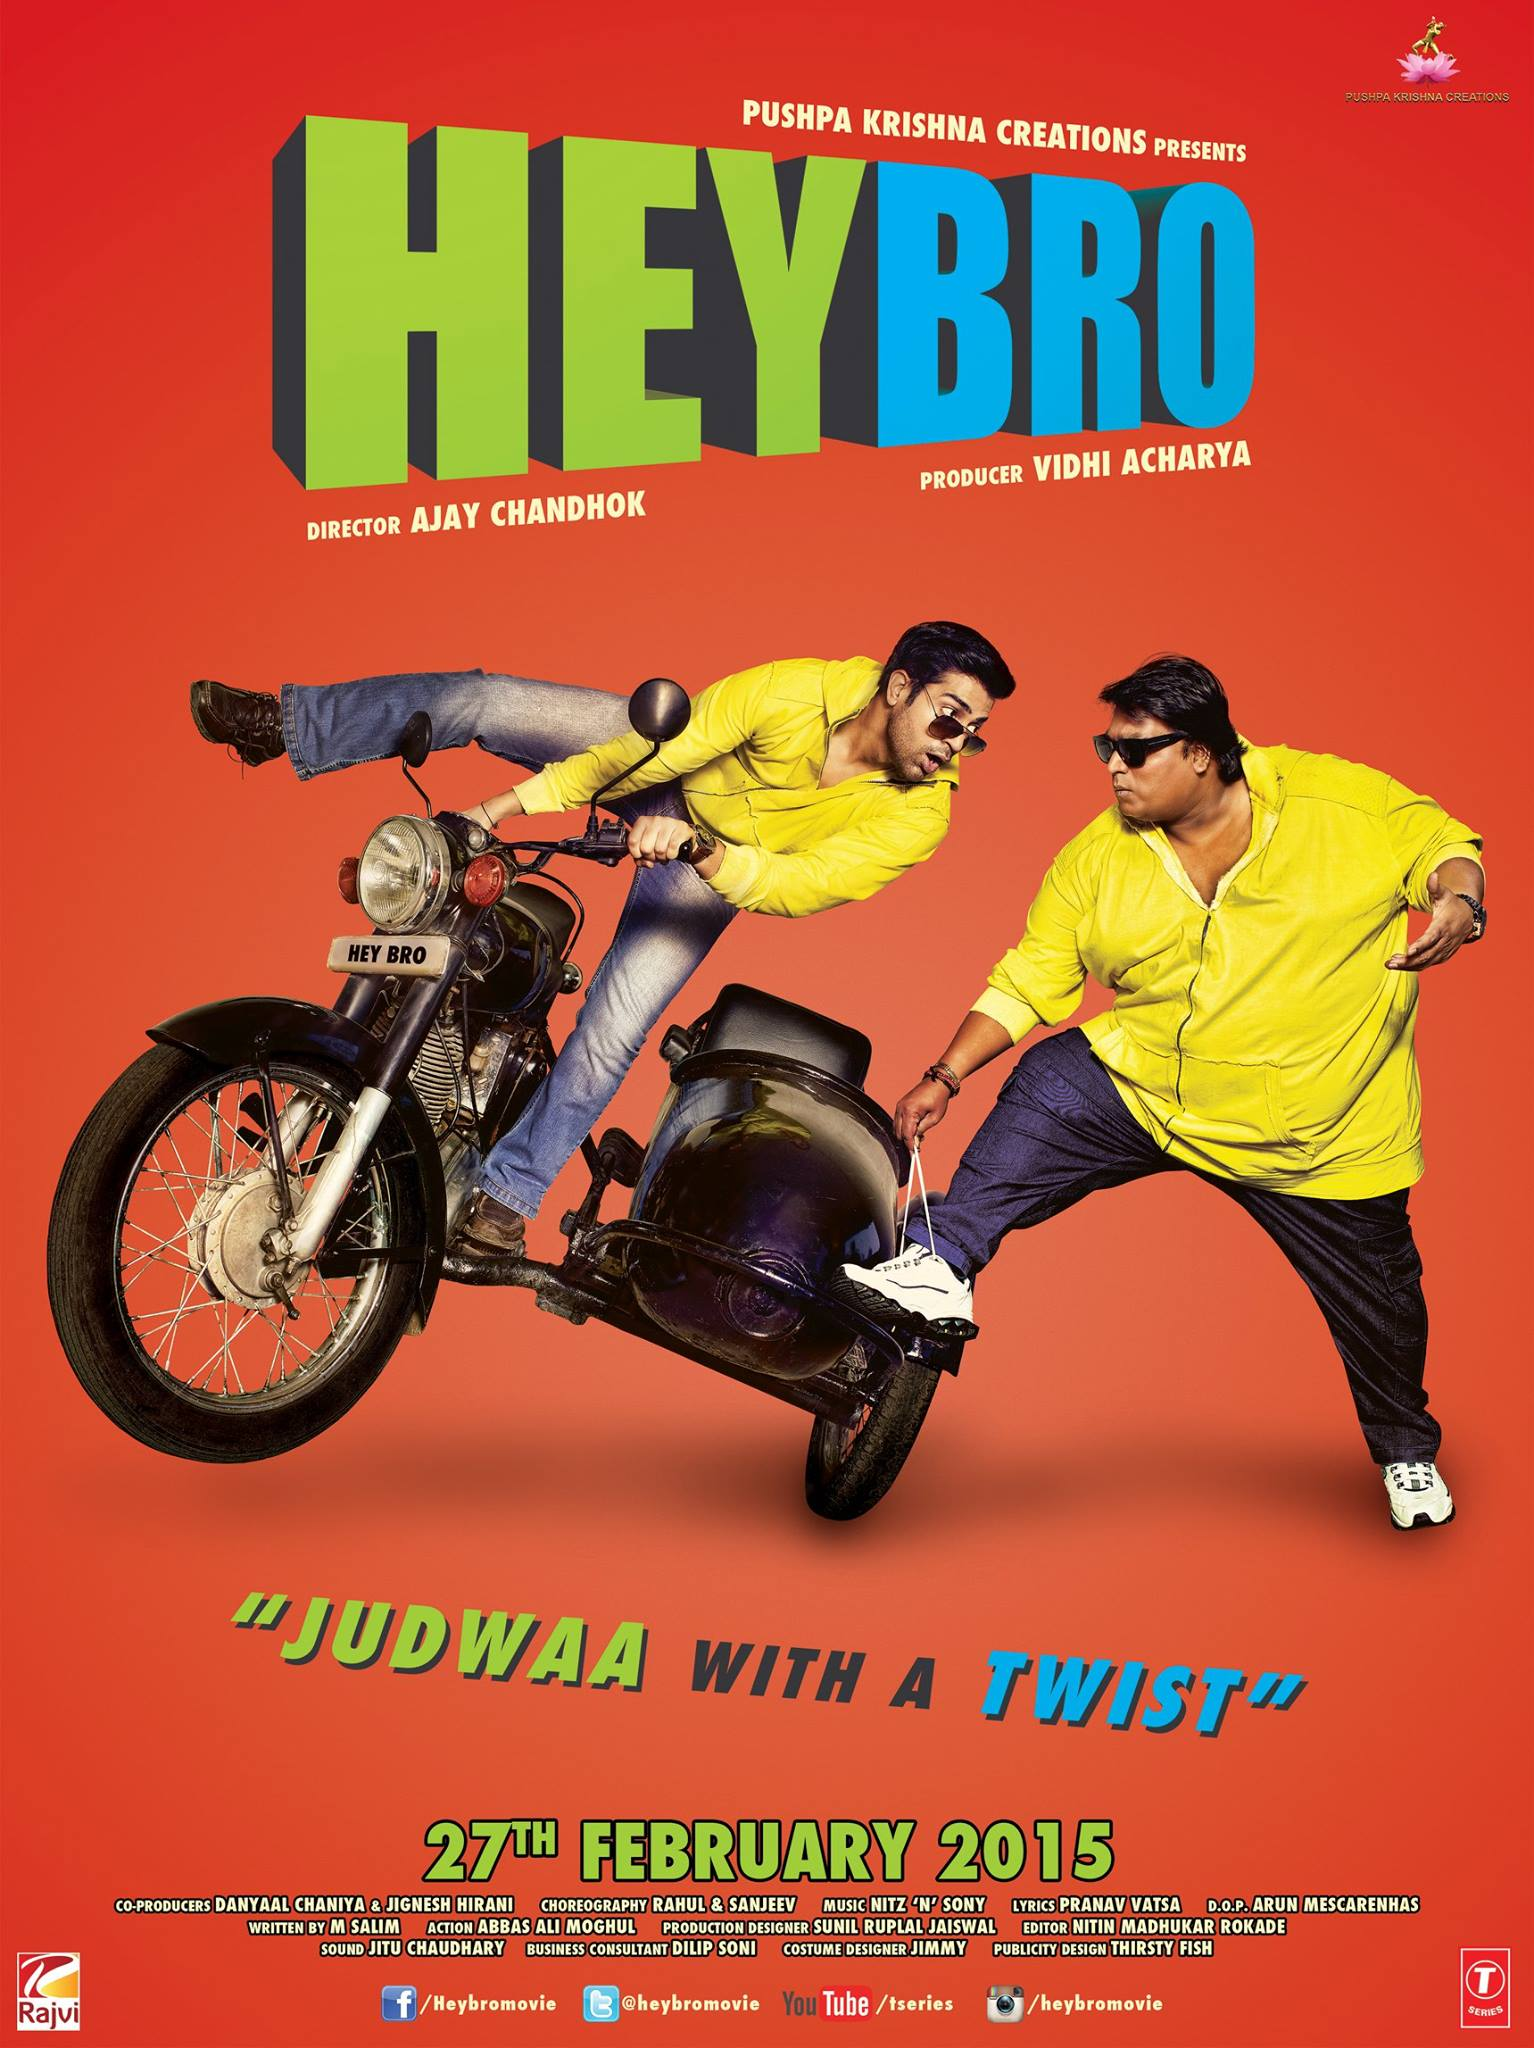 Bollywood 'Twins' Ripoff 'Hey Bro' - P 2015